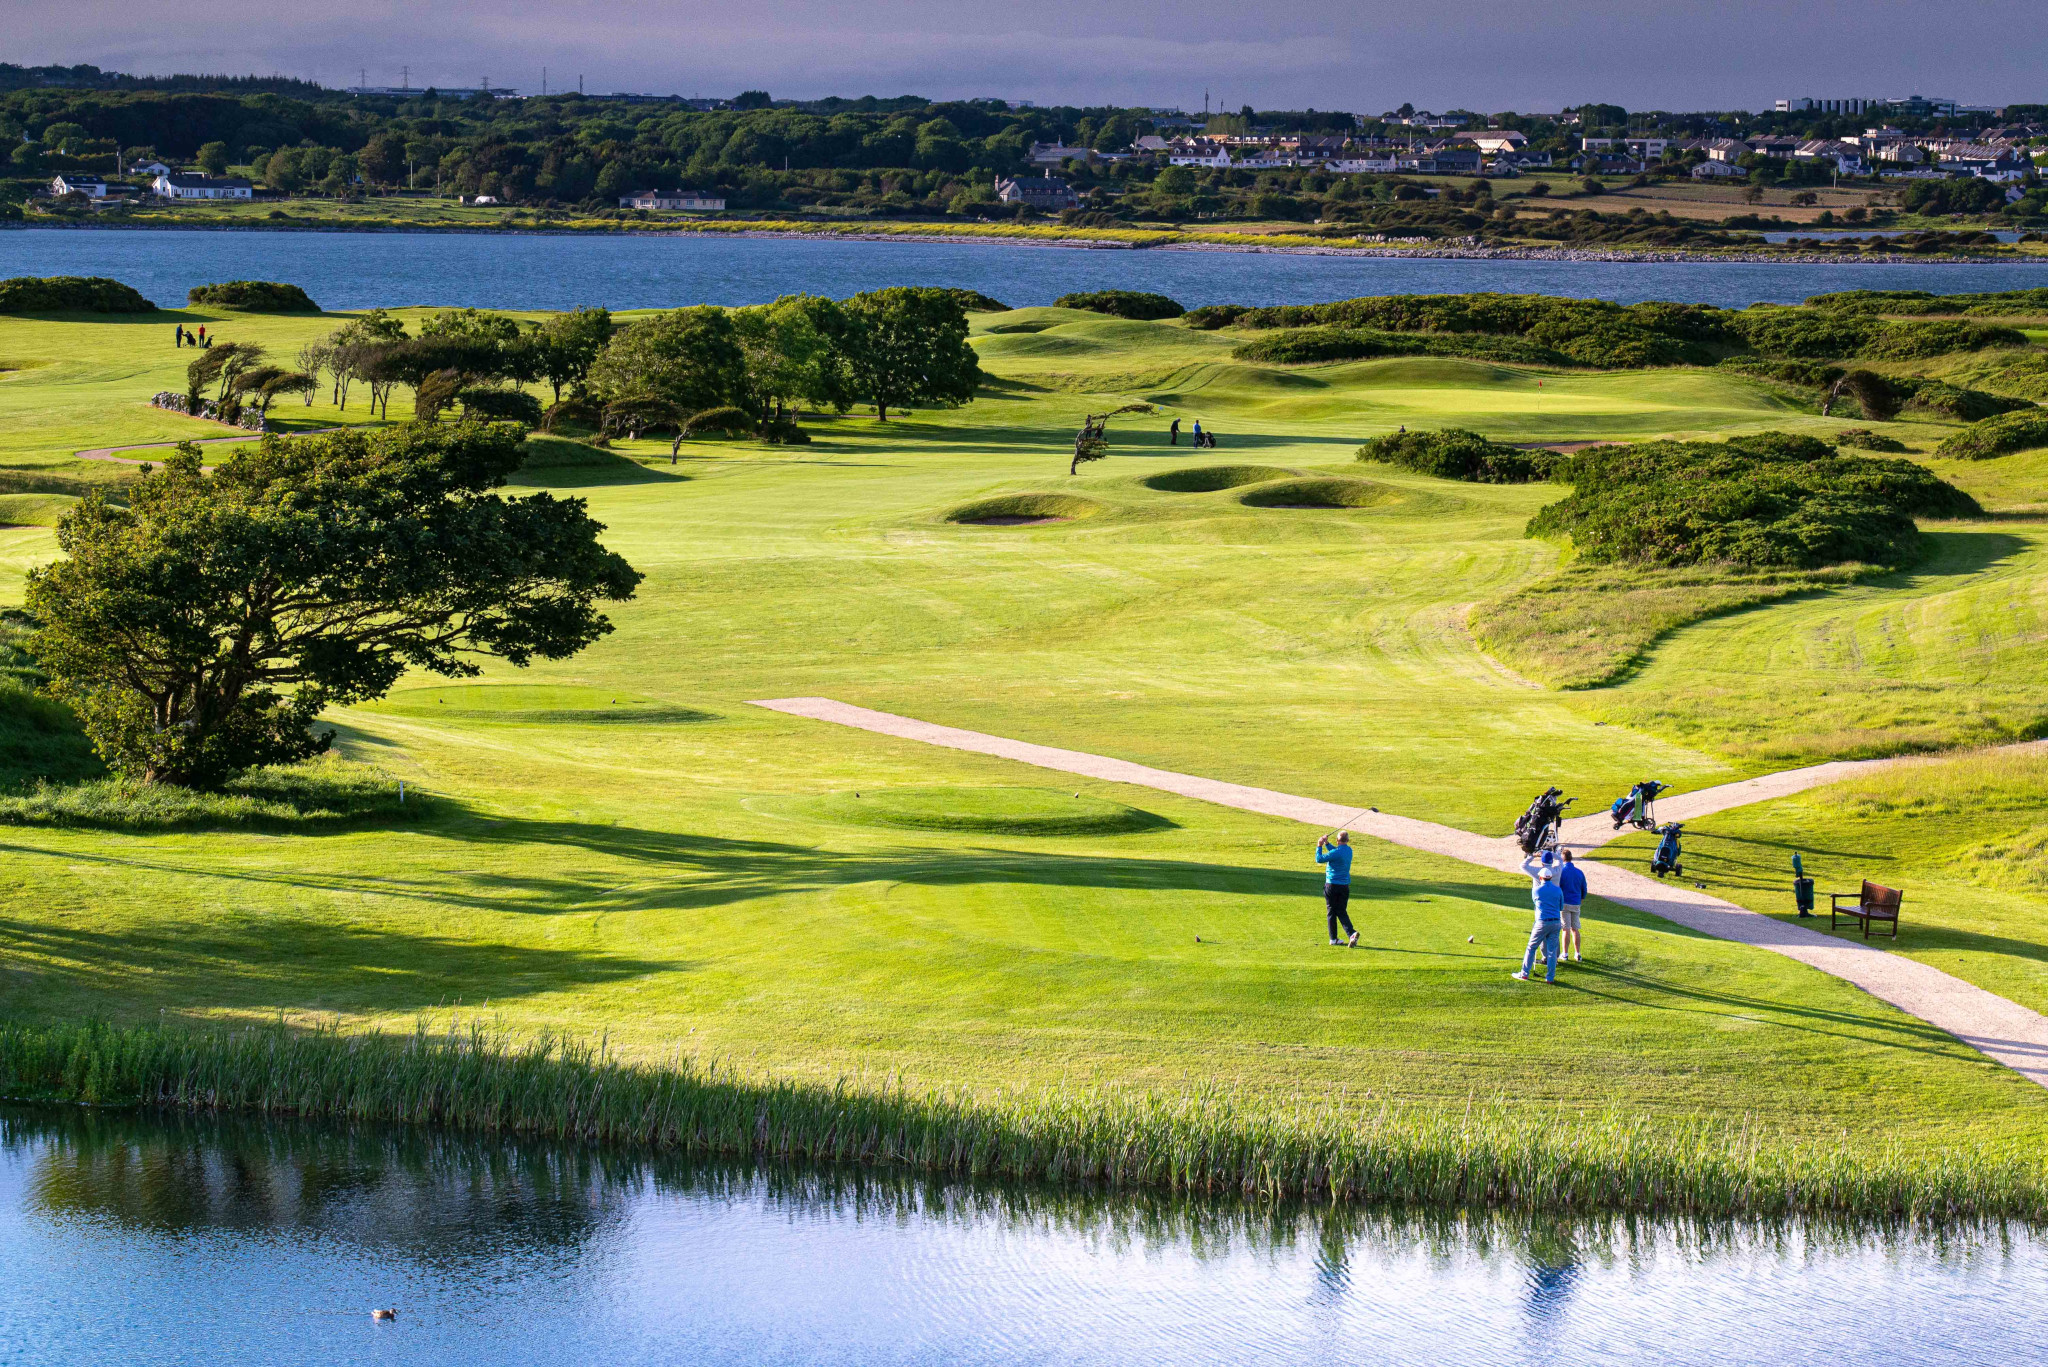 Galway Bay Golf Resort one of the best 18 hole golf courses in Galway